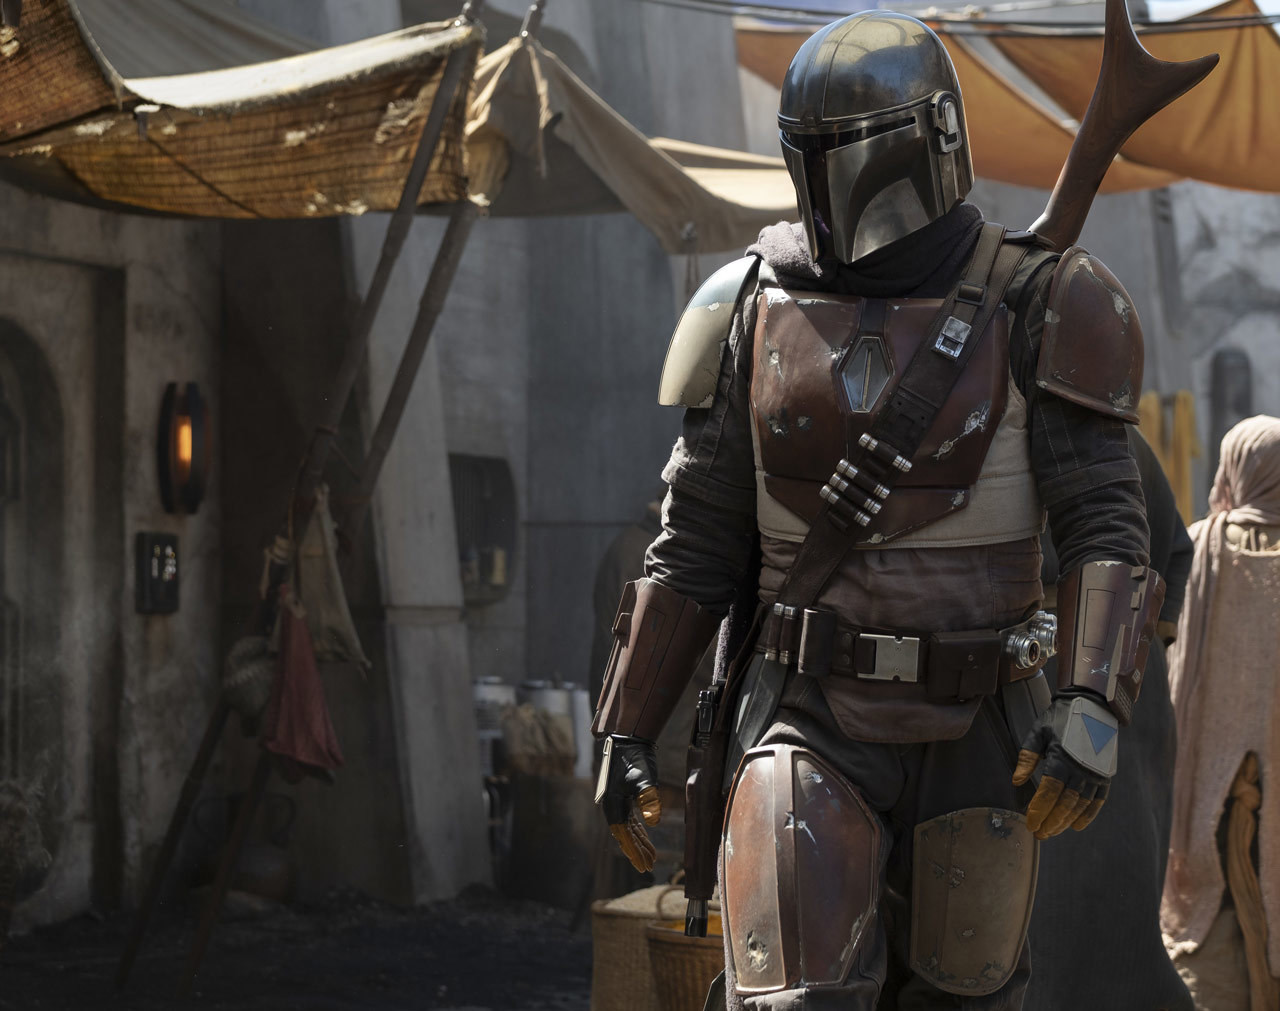 'Star Wars' TV Show 'The Mandalorian' Preview